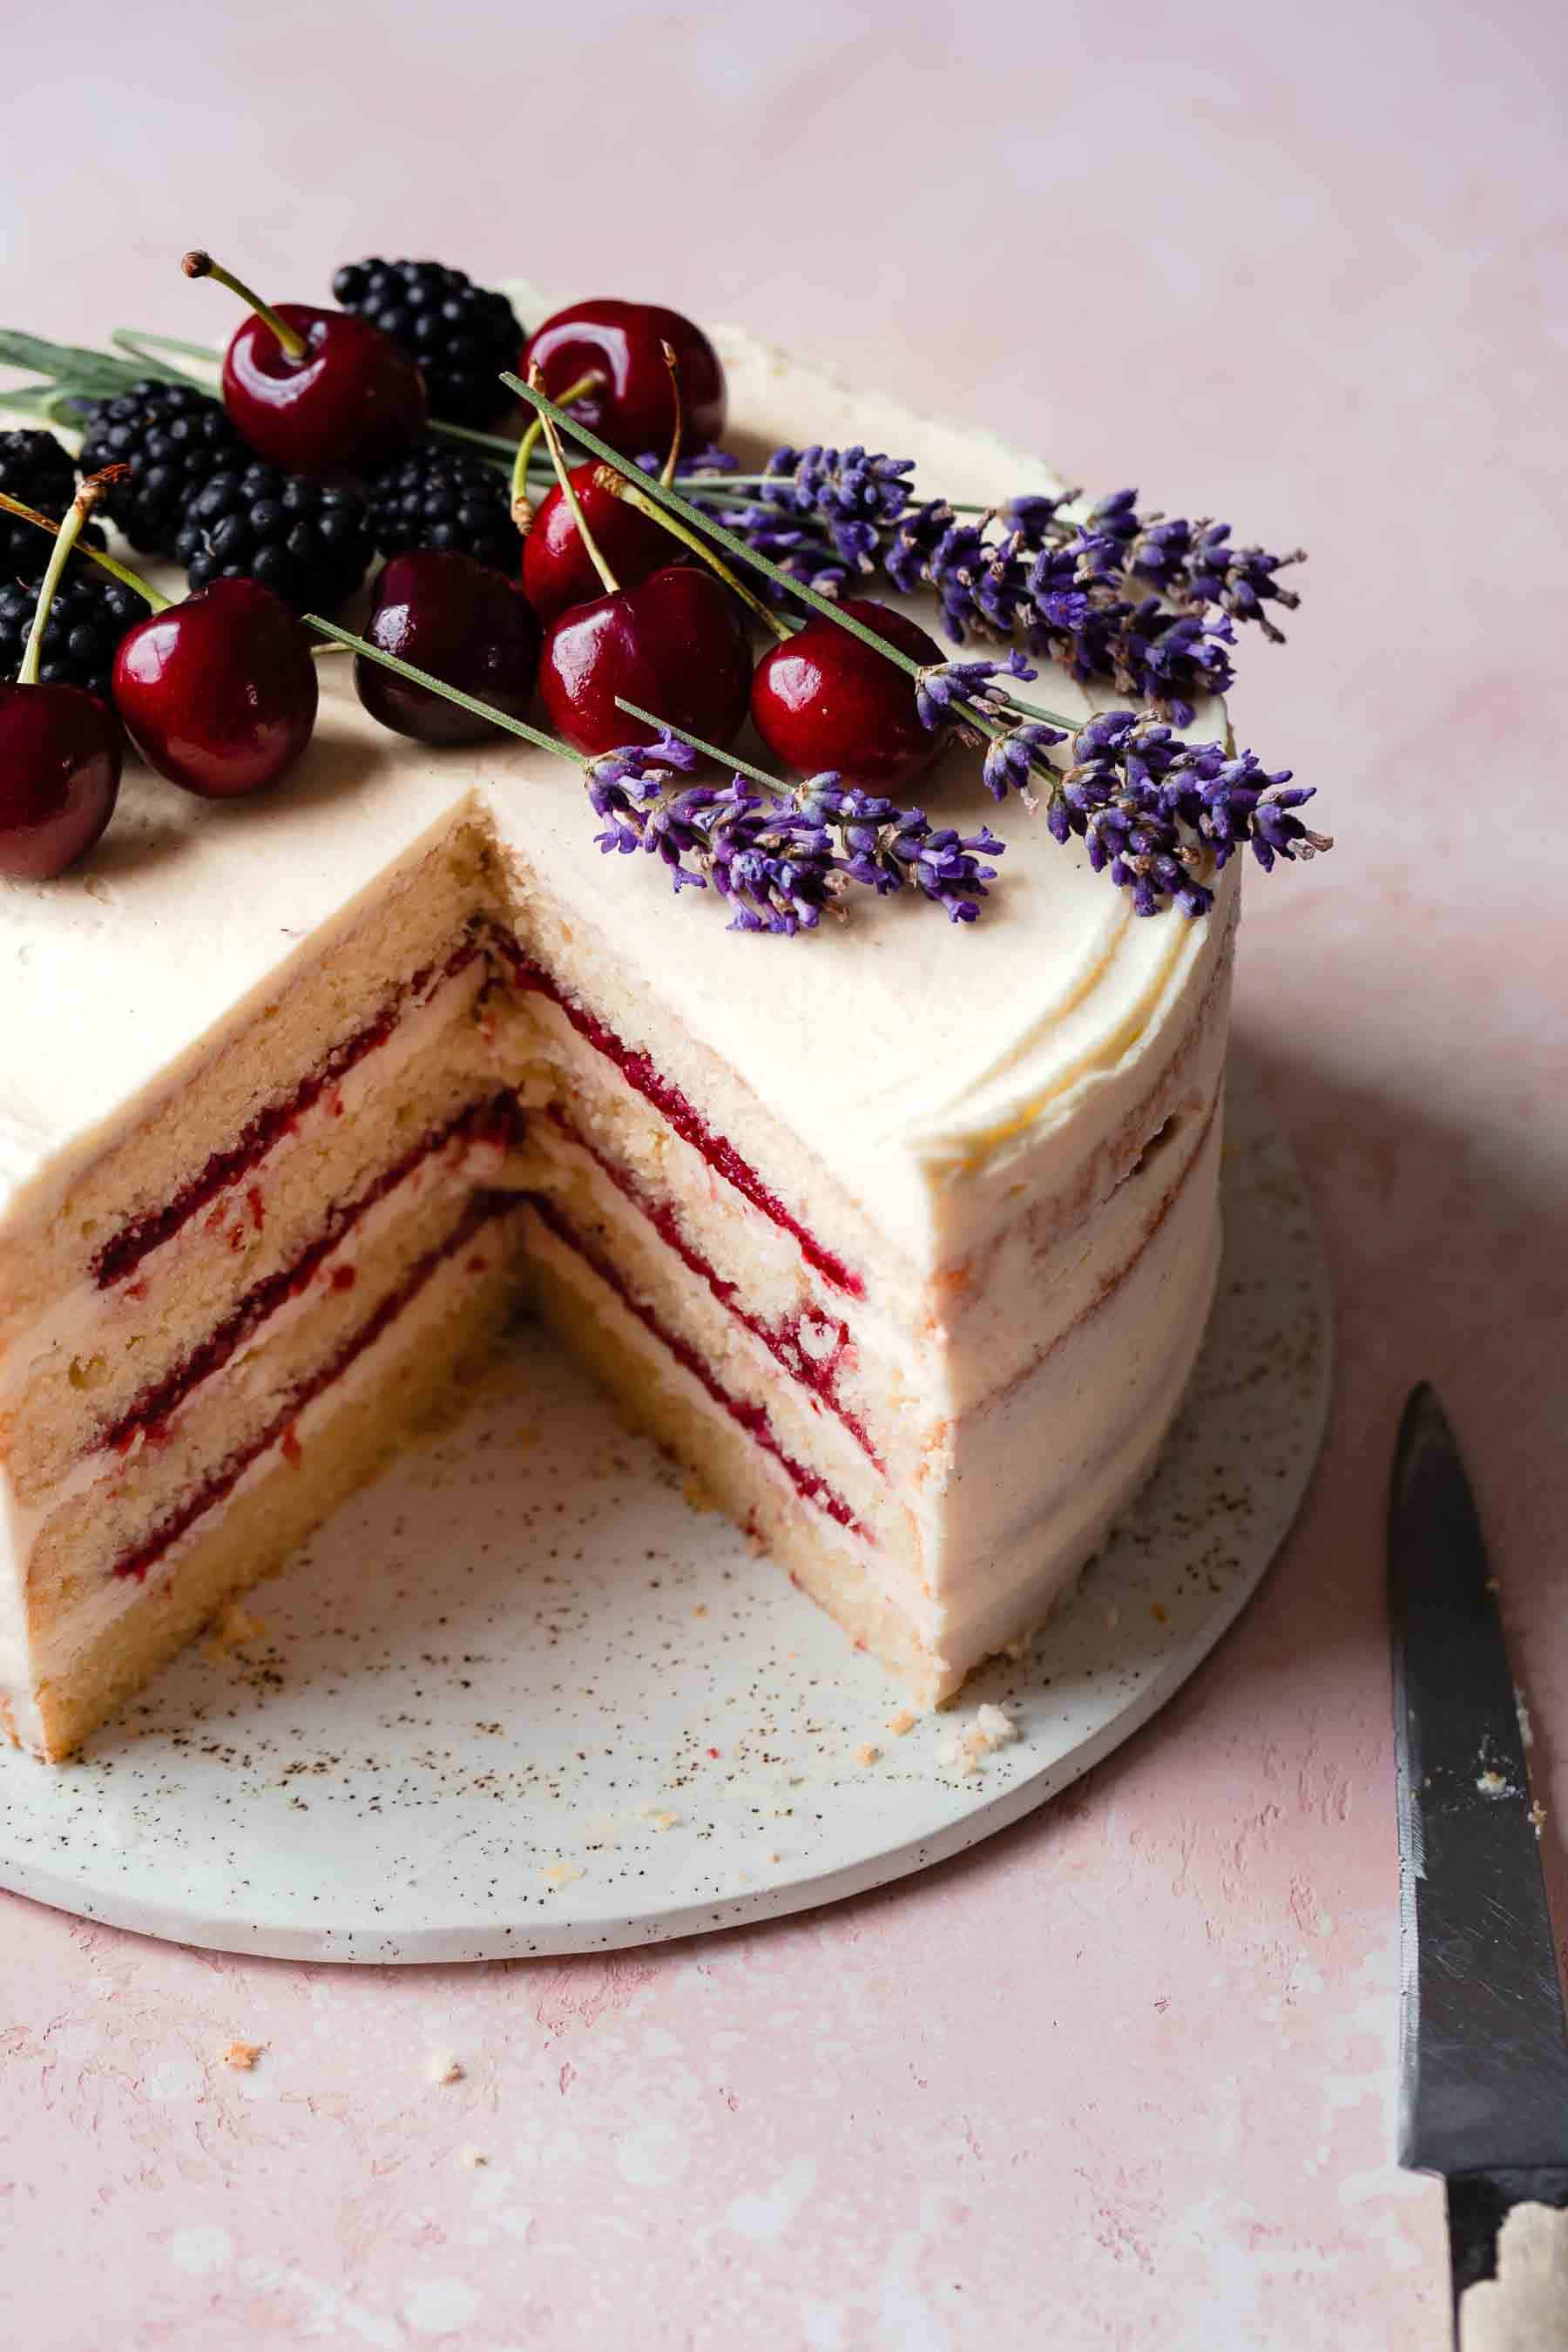 FRESH CHERRY CAKE RECIPE FROM SCRATCH ALSO THE CRUMBS PLEASE